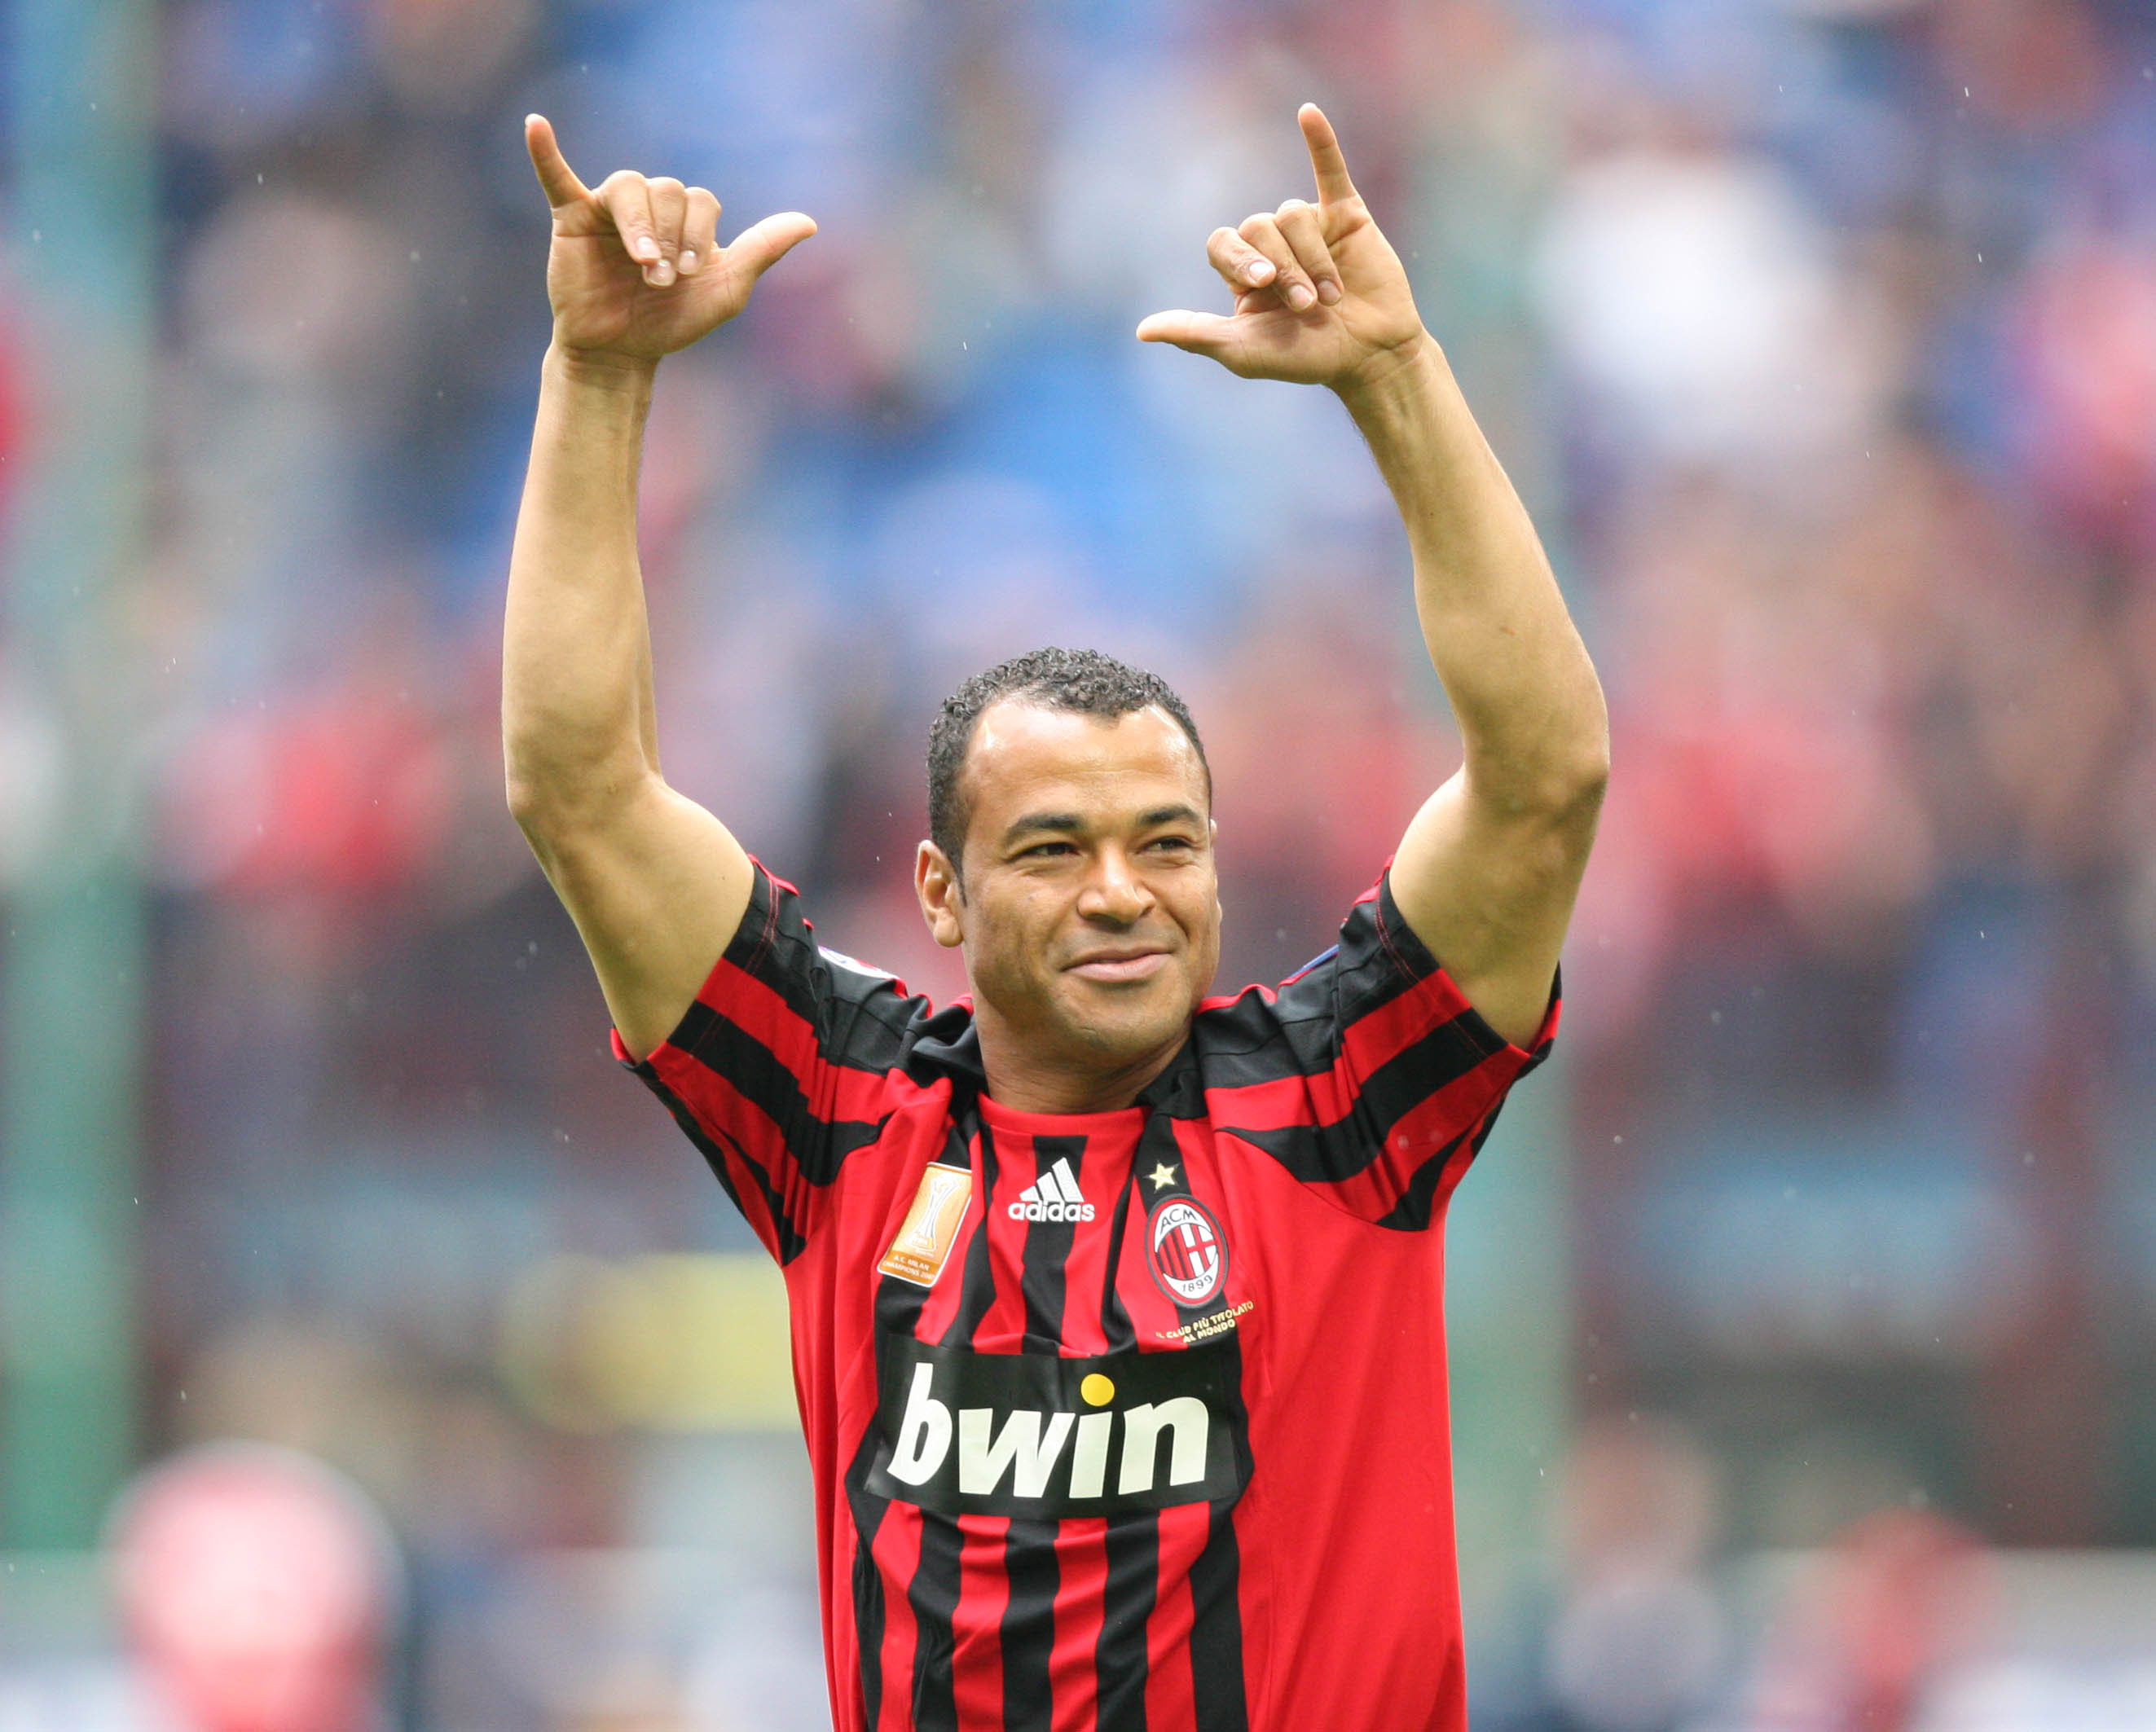 MILAN, ITALY - MAY 18:  Cafu of AC Milan celebrates a goal during the Serie A match between Milan and Udinese at the Stadio Meazza San Siro on May 18, 2008 in Milan, Italy. (Photo by New Press/Getty Images)